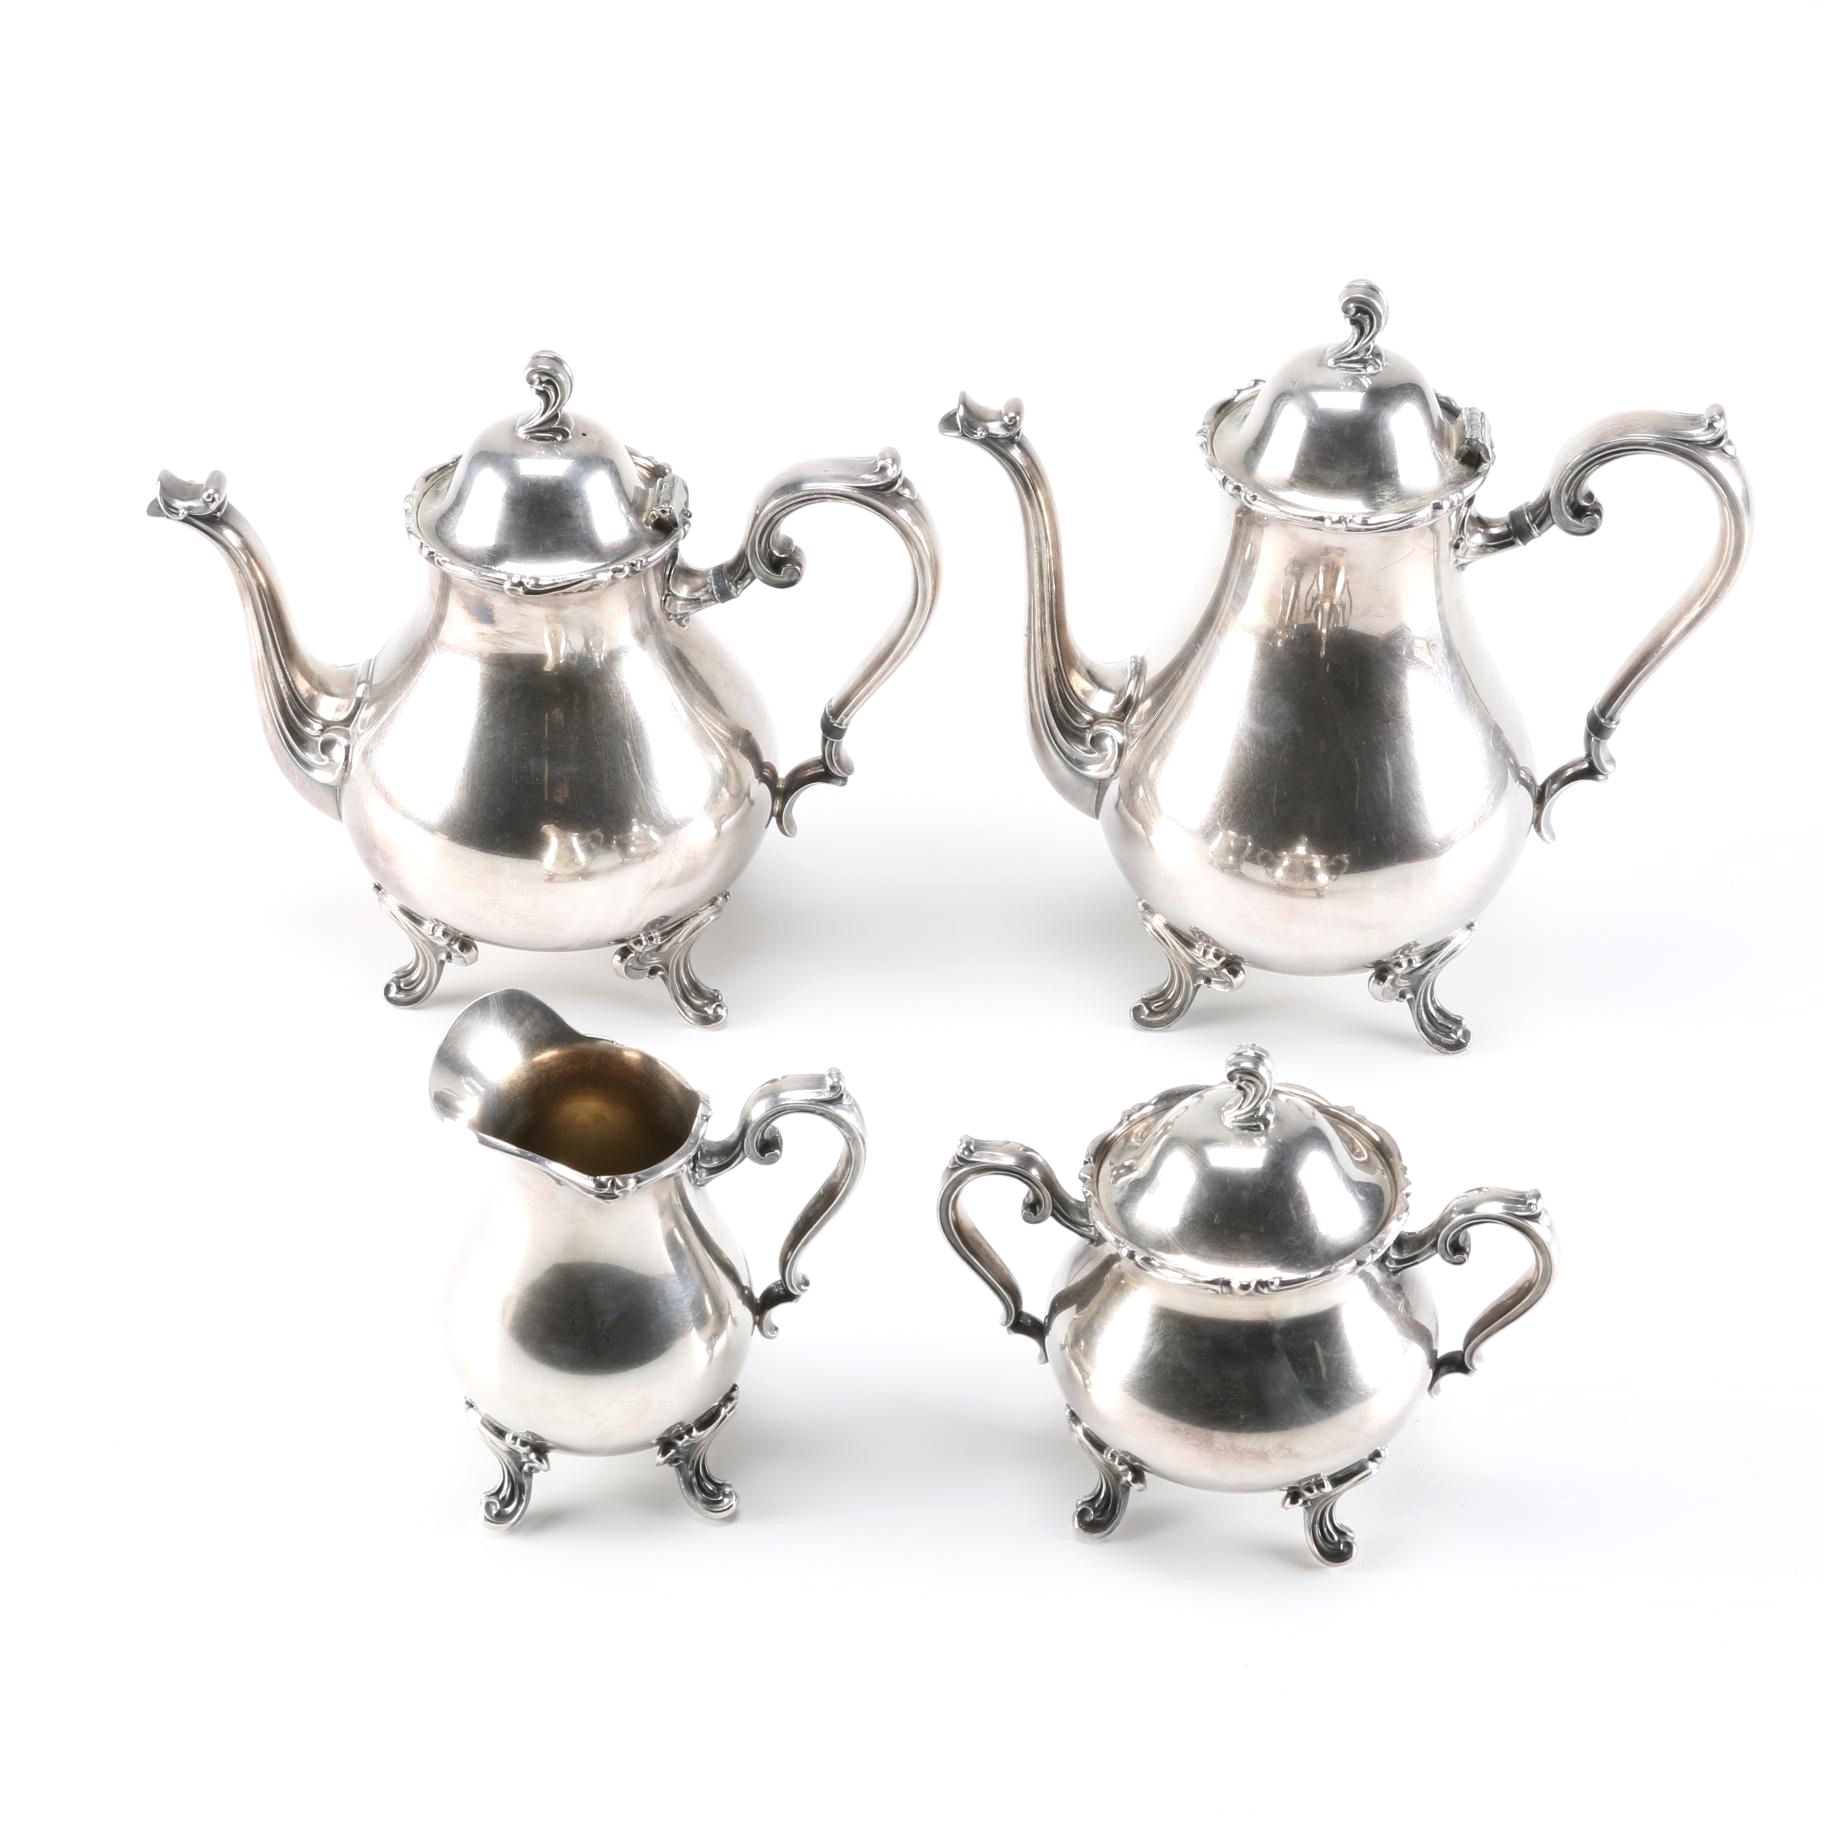 Wilcox  Joanne  Silver Plated Tea and Coffee Set ...  sc 1 st  EBTH.com & Wilcox